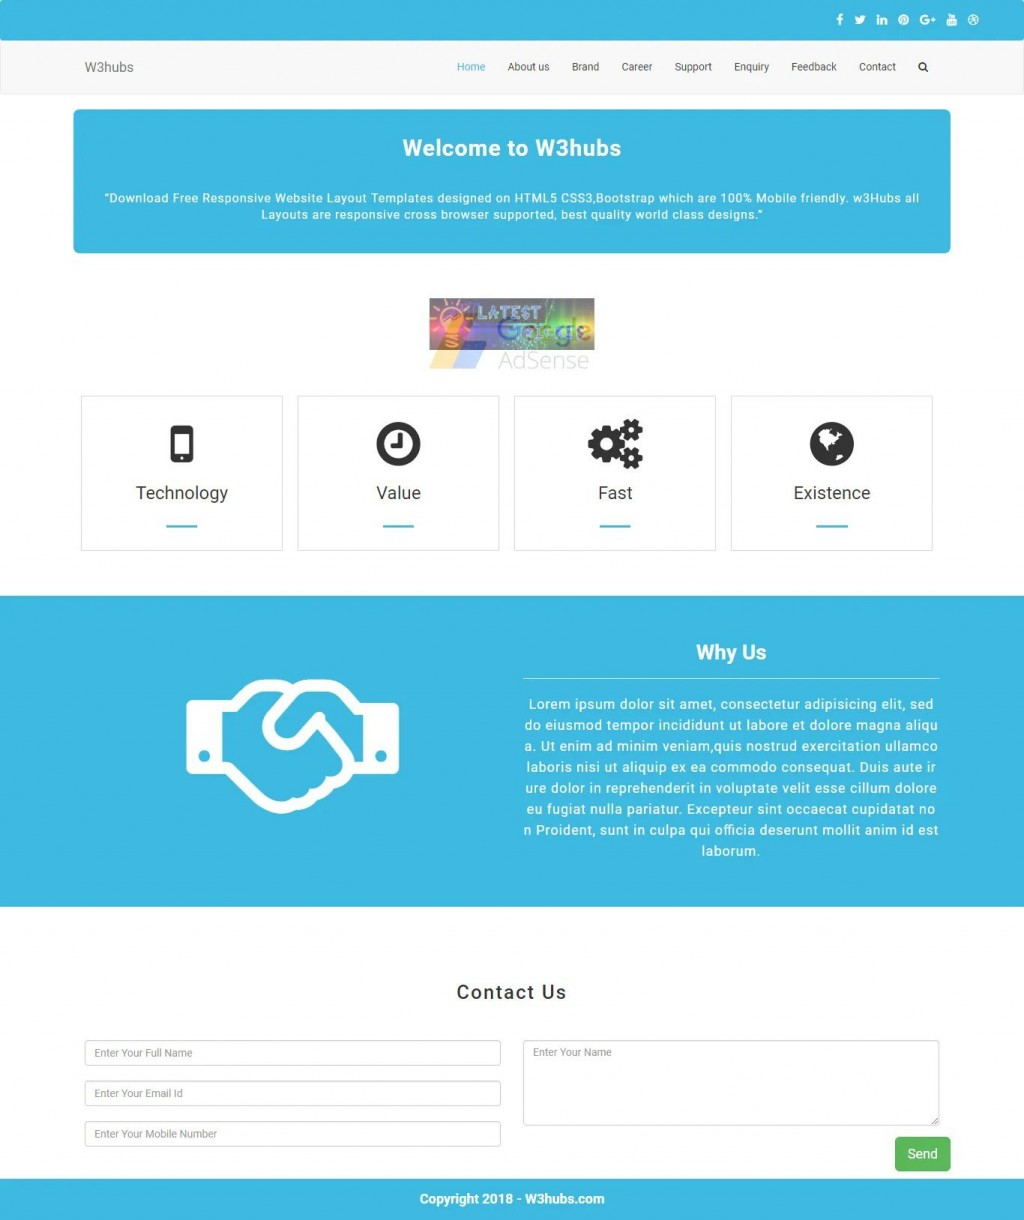 007 Unbelievable Free Php Website Template Photo  Download And Cs Full ThemeLarge